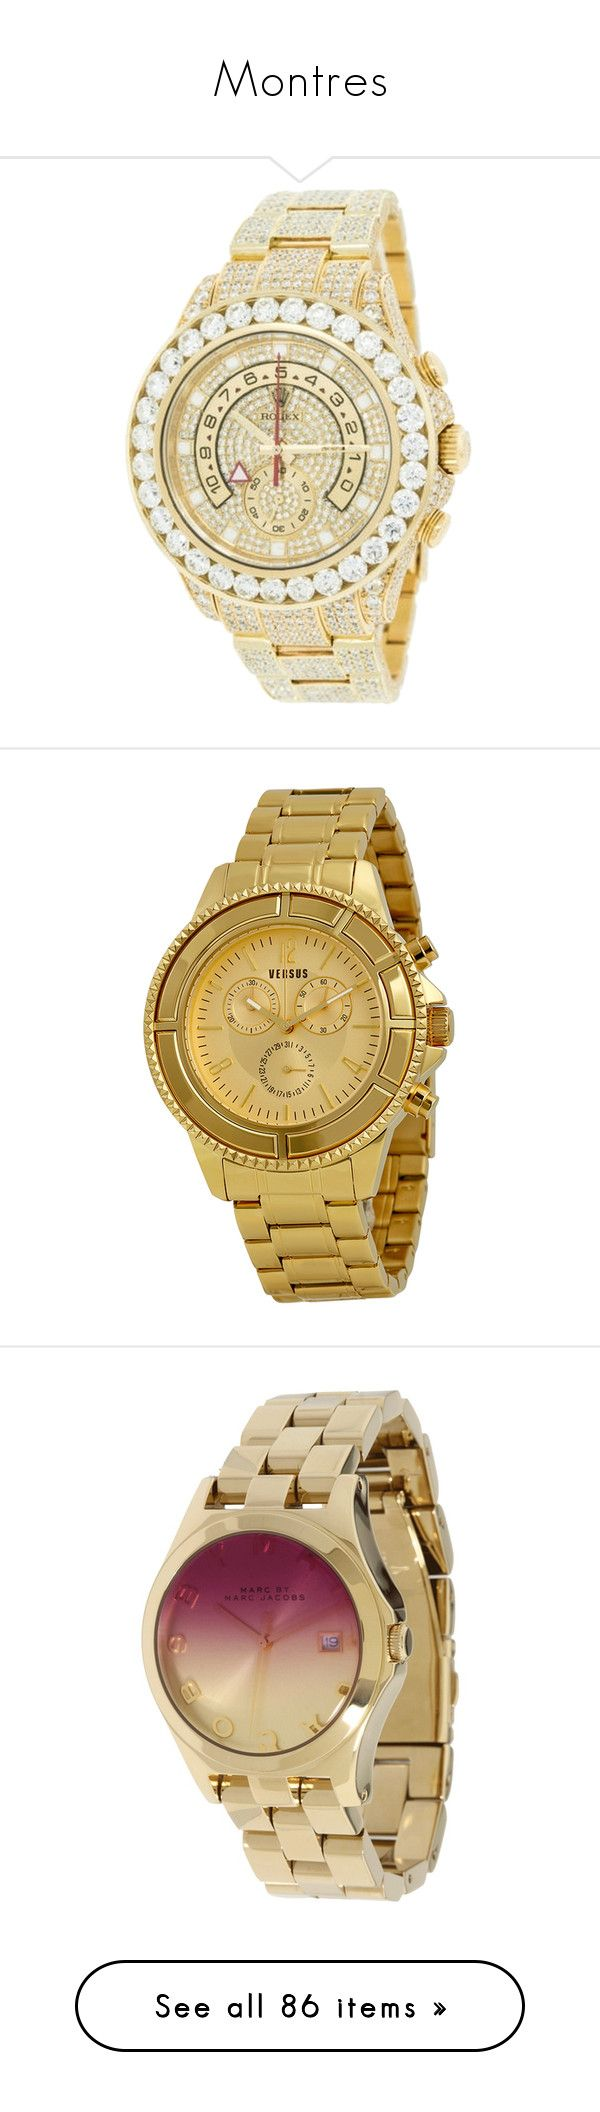 """""""Montres"""" by laurie-1994 ❤ liked on Polyvore featuring jewelry, watches, accessories, rolex jewelry, rolex, rolex wrist watch, pre owned watches, rolex watches, relojes and relógios"""